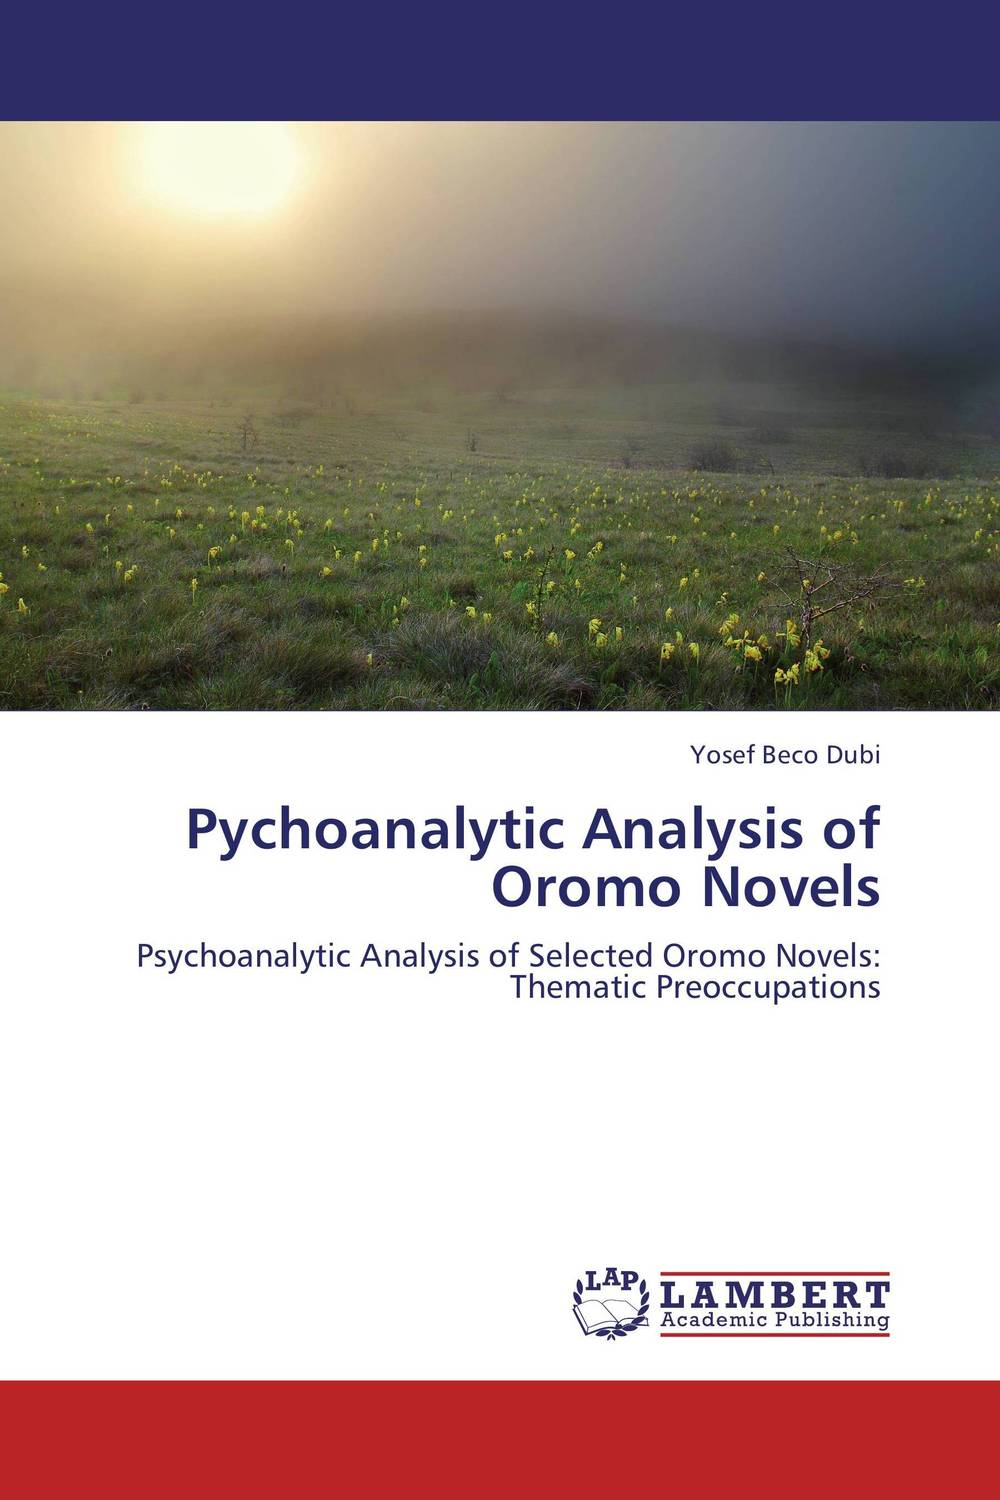 Фото Pychoanalytic Analysis of Oromo Novels ethnic interaction the case of oromo and amhara in western ethiopia